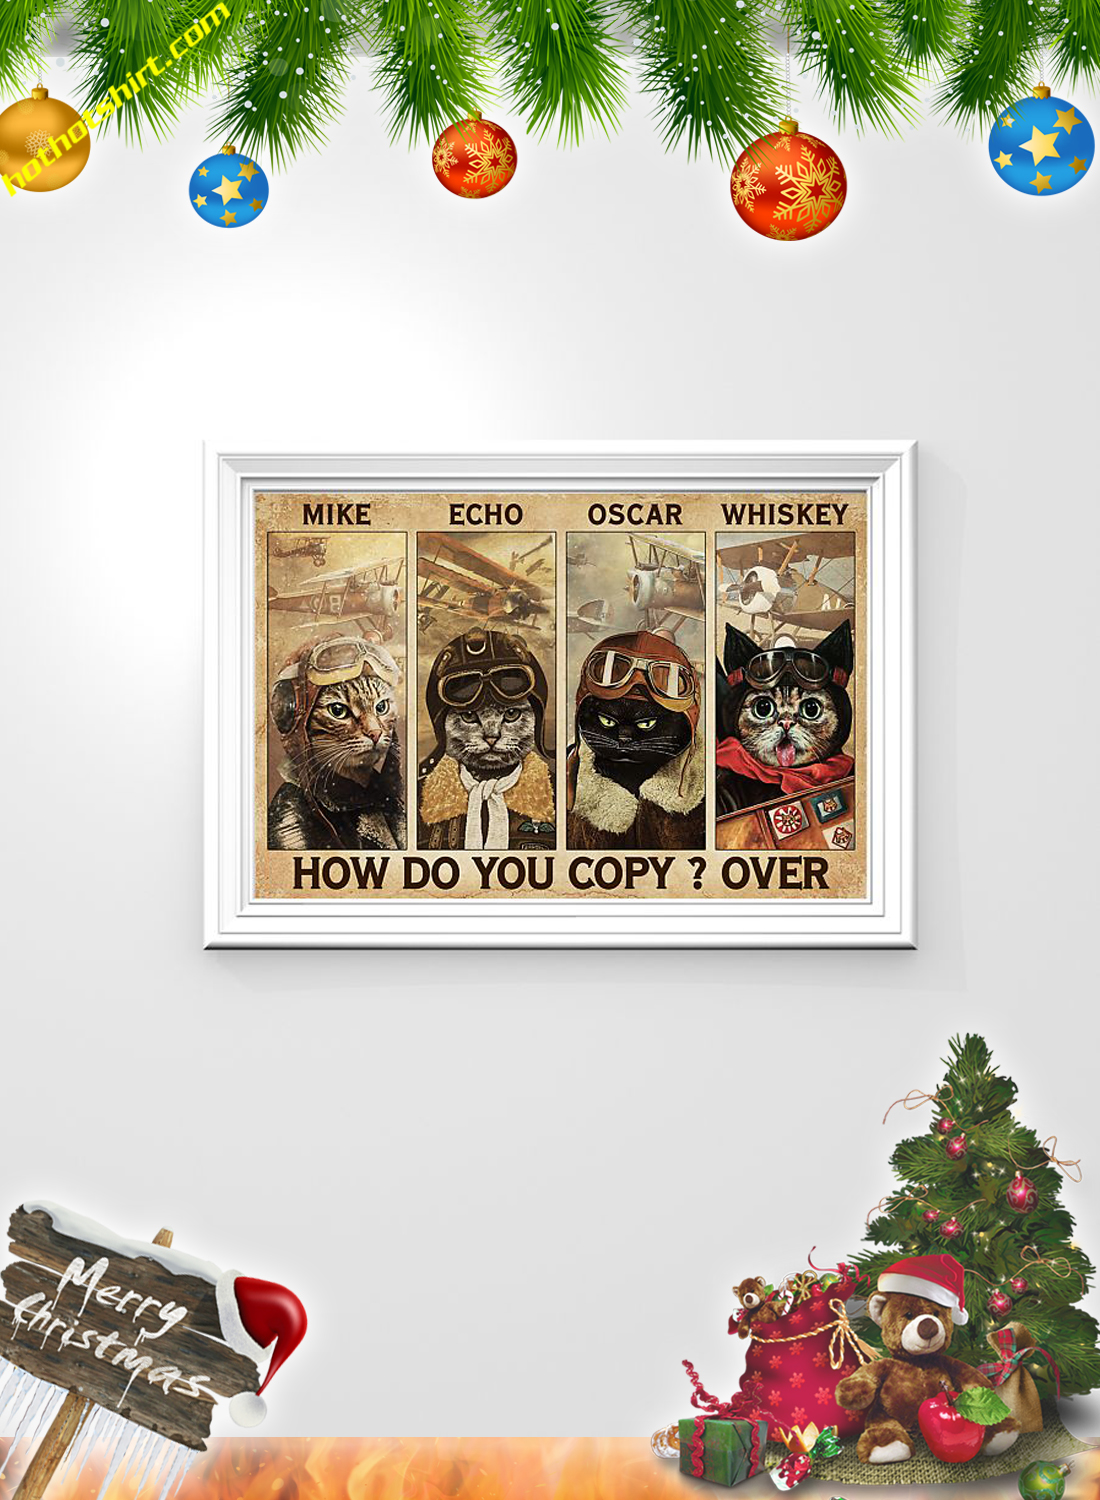 Cats pilot Mike echo oscar whiskey how do you copy over poster 2